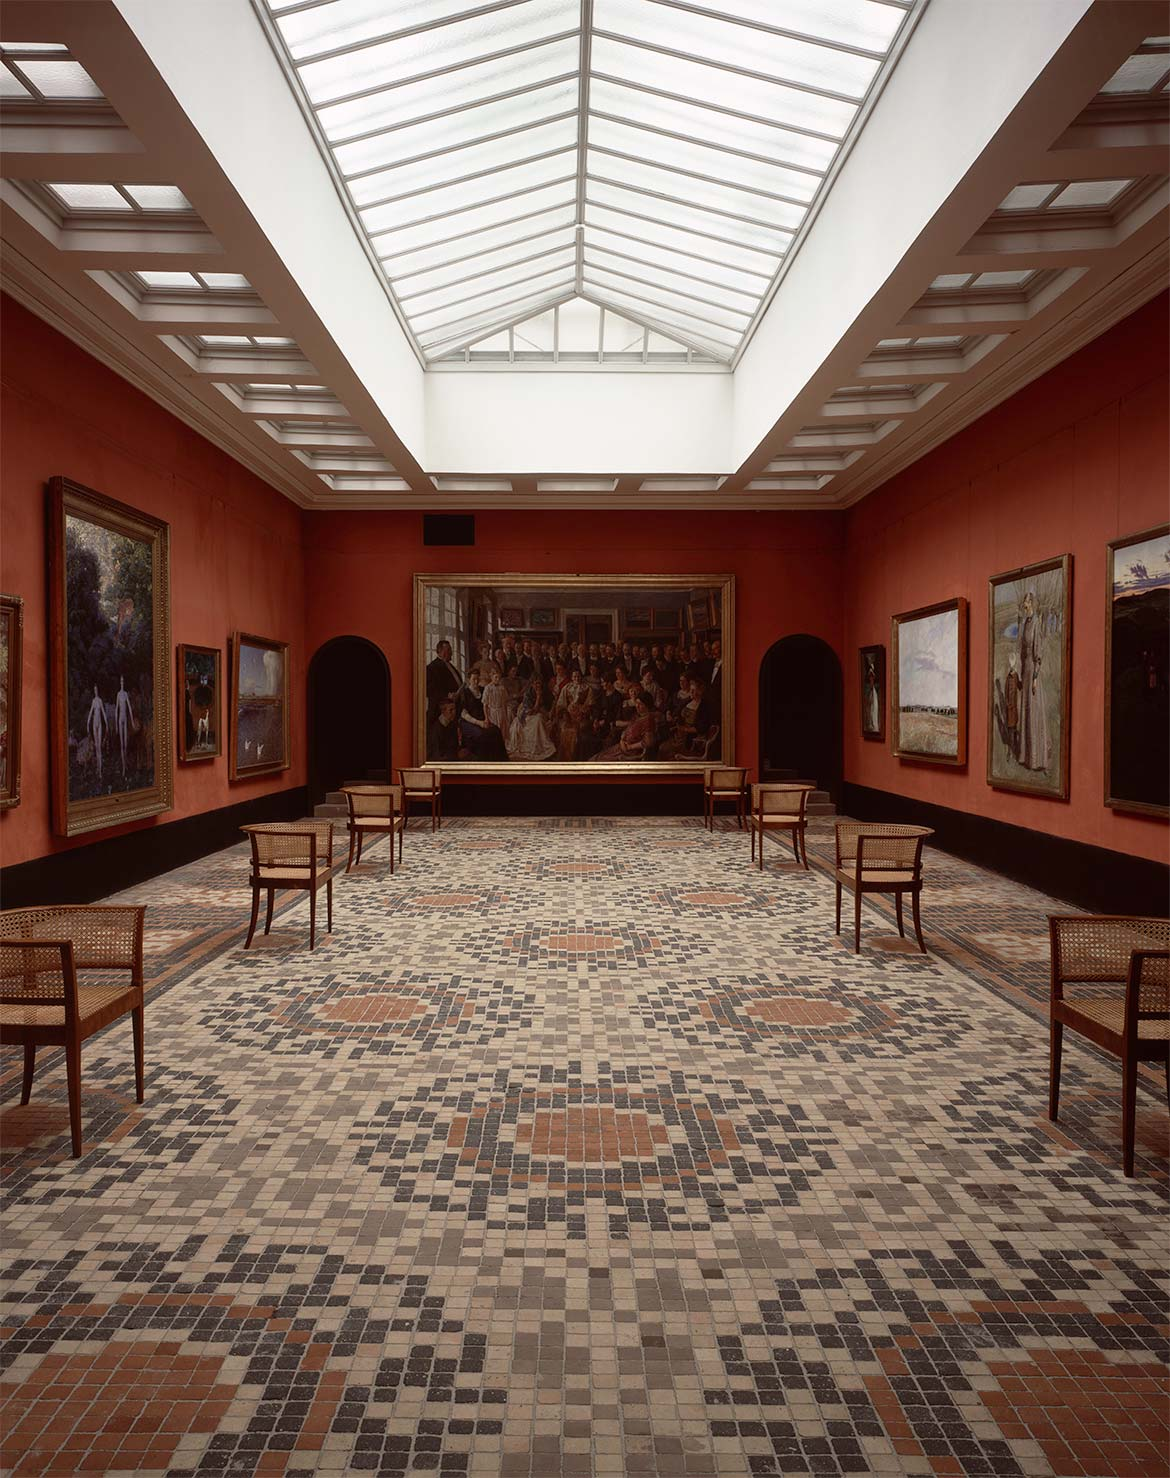 Main painting gallery with Peter Hansen's painting of the inauguration of Faaborg Museum.